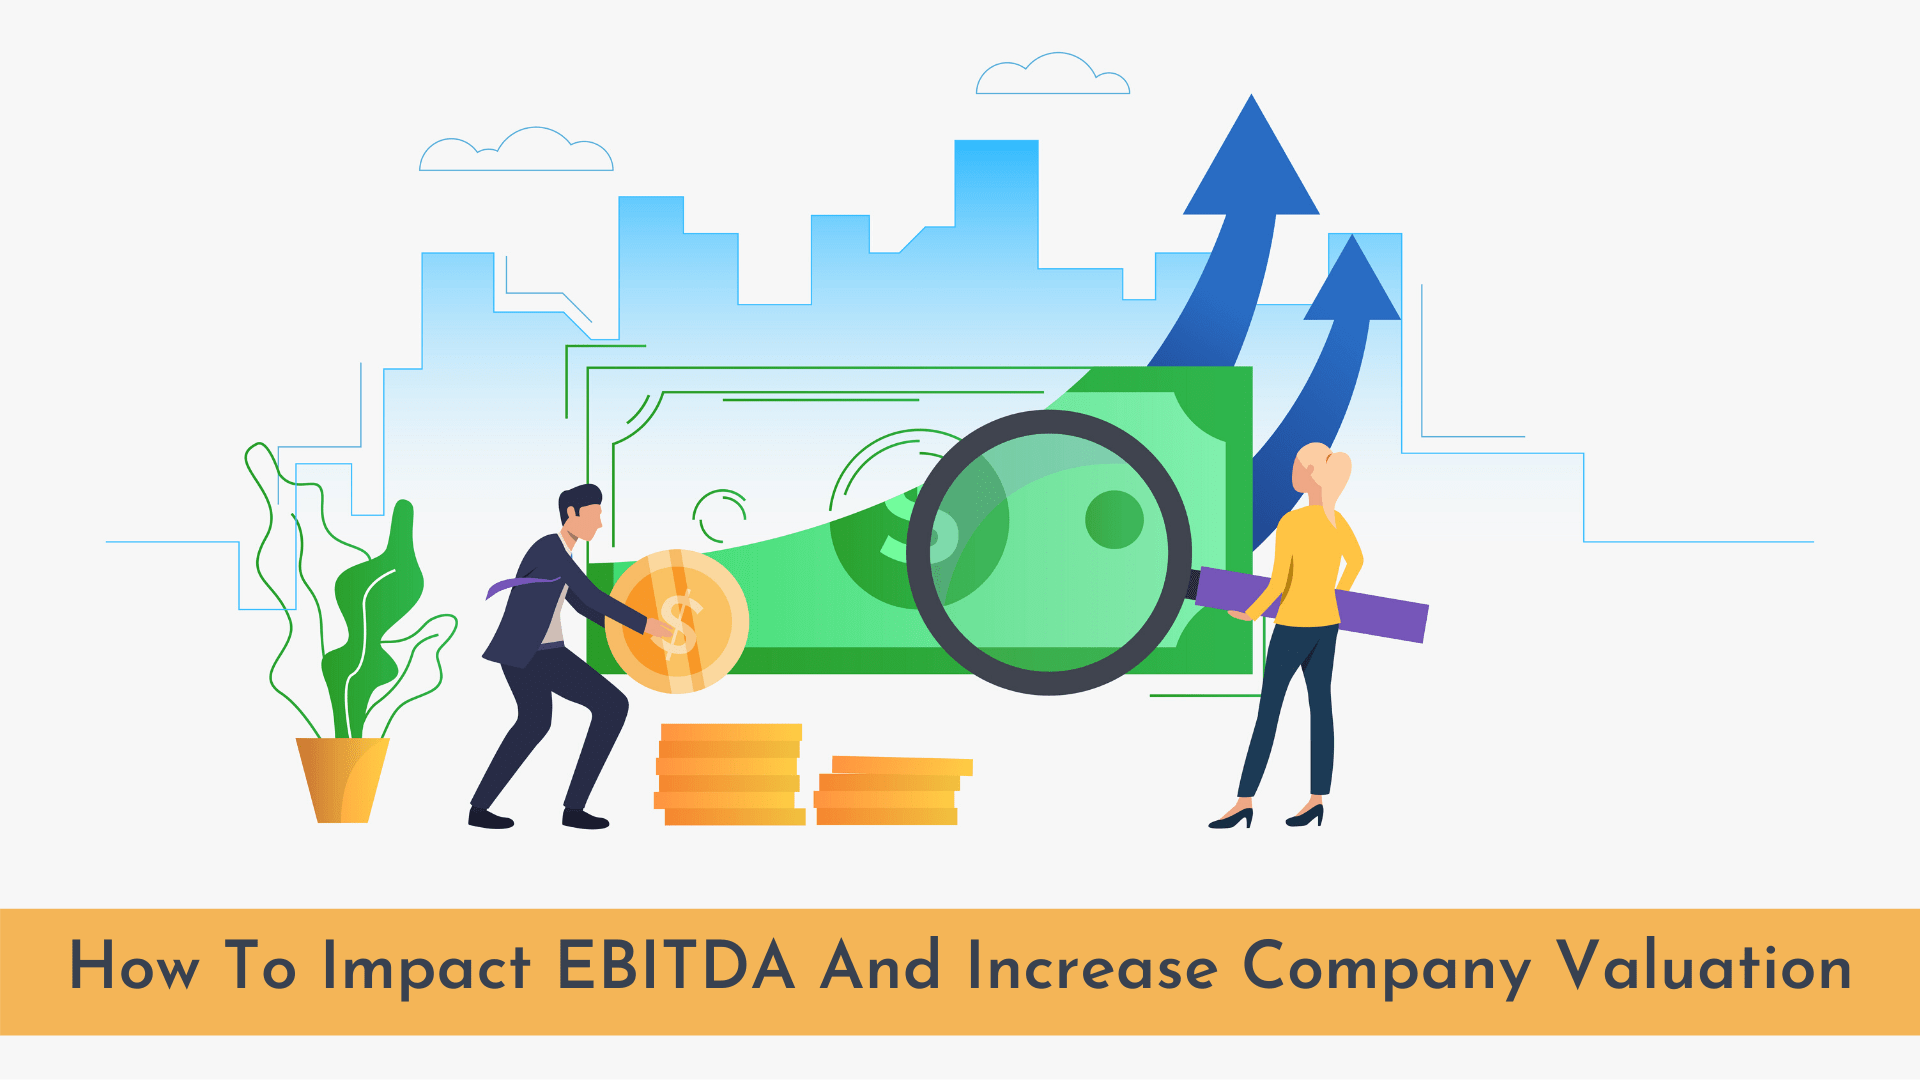 How To Impact EBITDA And Increase Company Valuation?